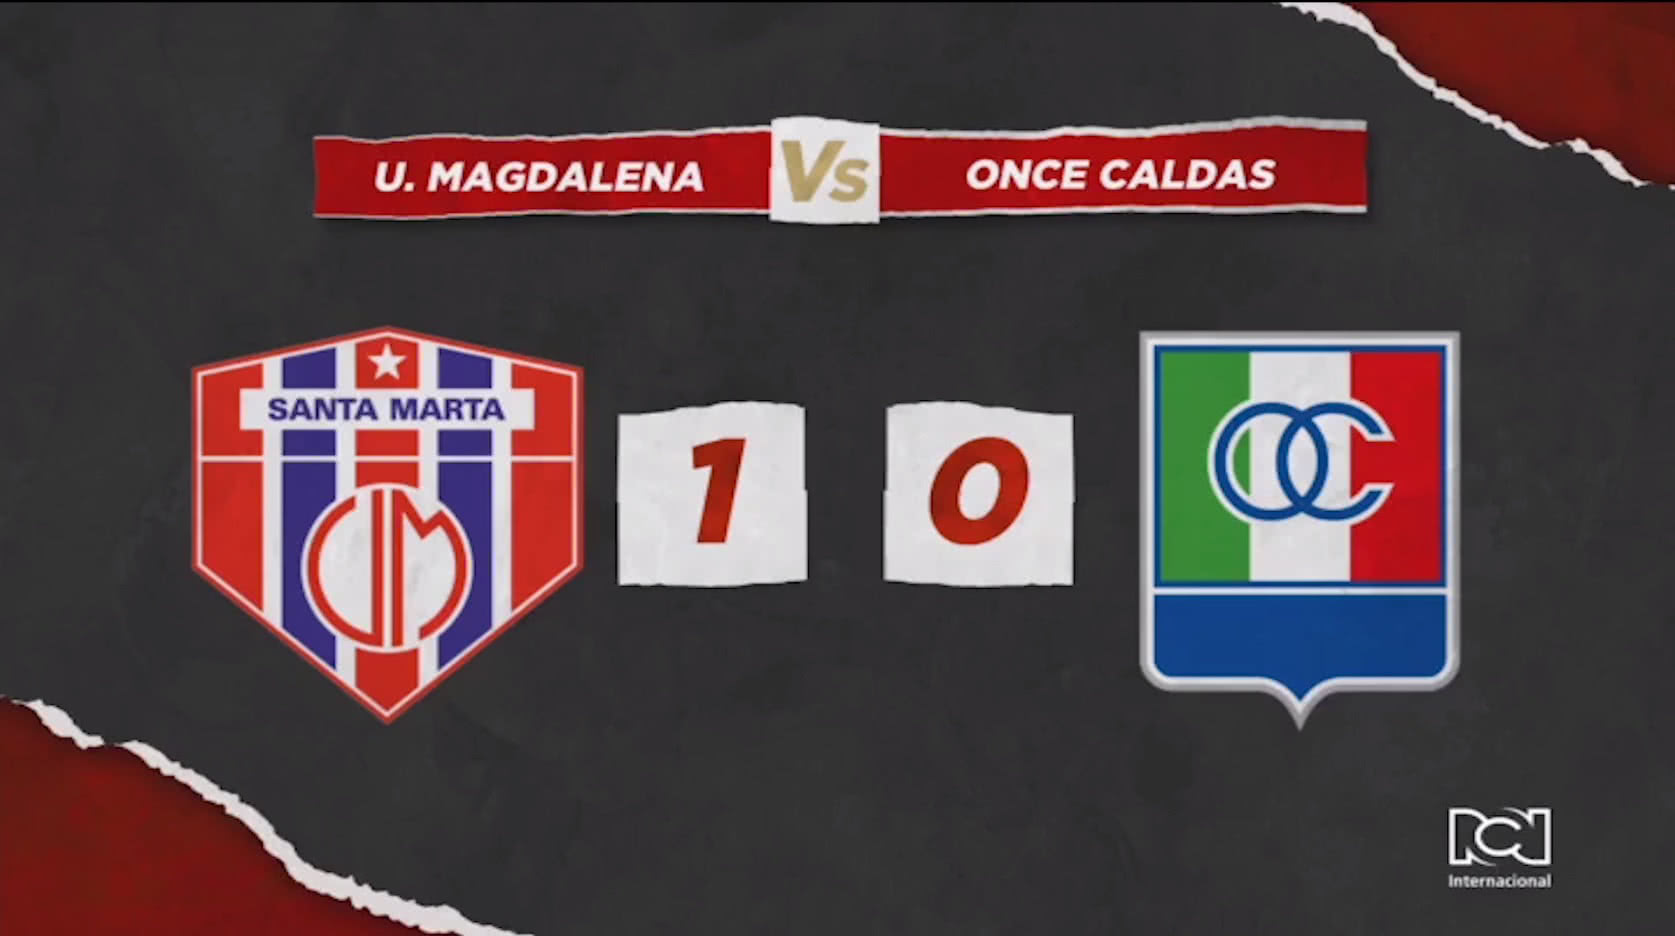 union-magdalena-vs-once-caldas.jpg